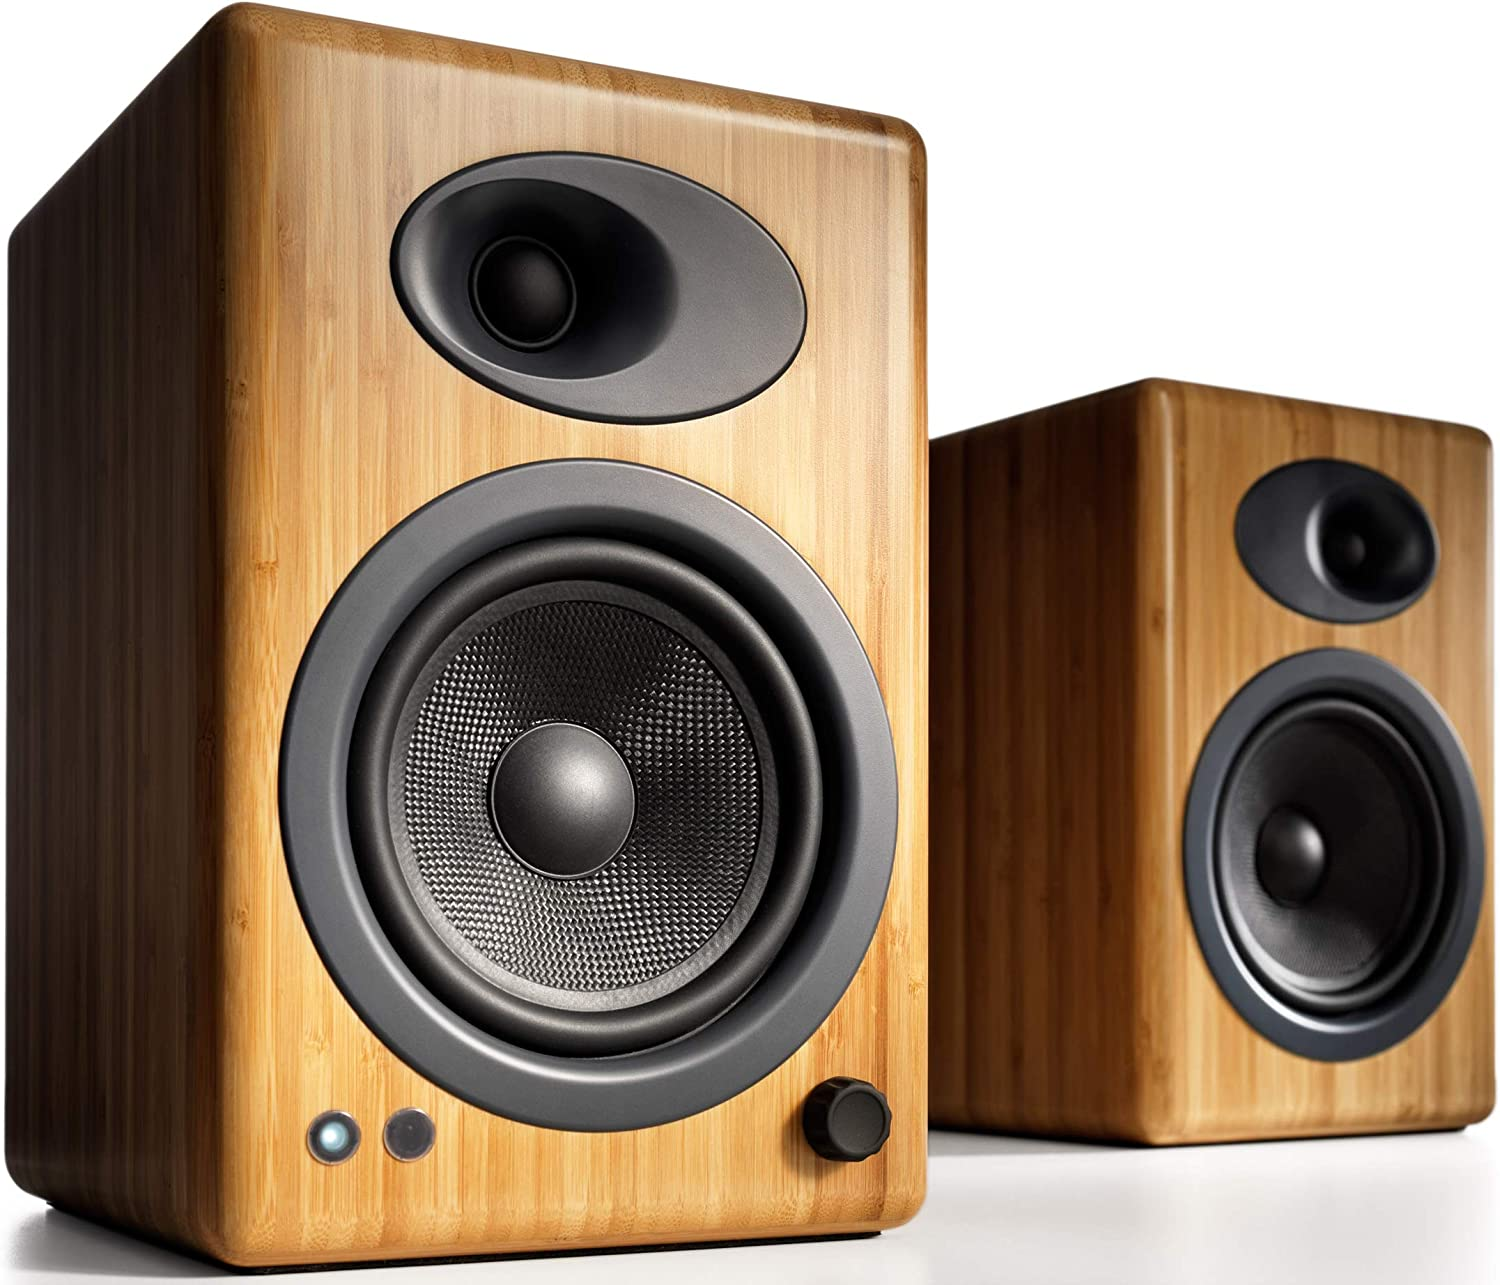 Audioengine A5+ (Plus) Powered Speaker | Desktop Monitor Speakers Computer Sound System | 150W Premium Powered Bookshelf Stereo Speakers Pair, AUX Audio, RCA Inputs/Outputs, Remote Control (Bamboo)